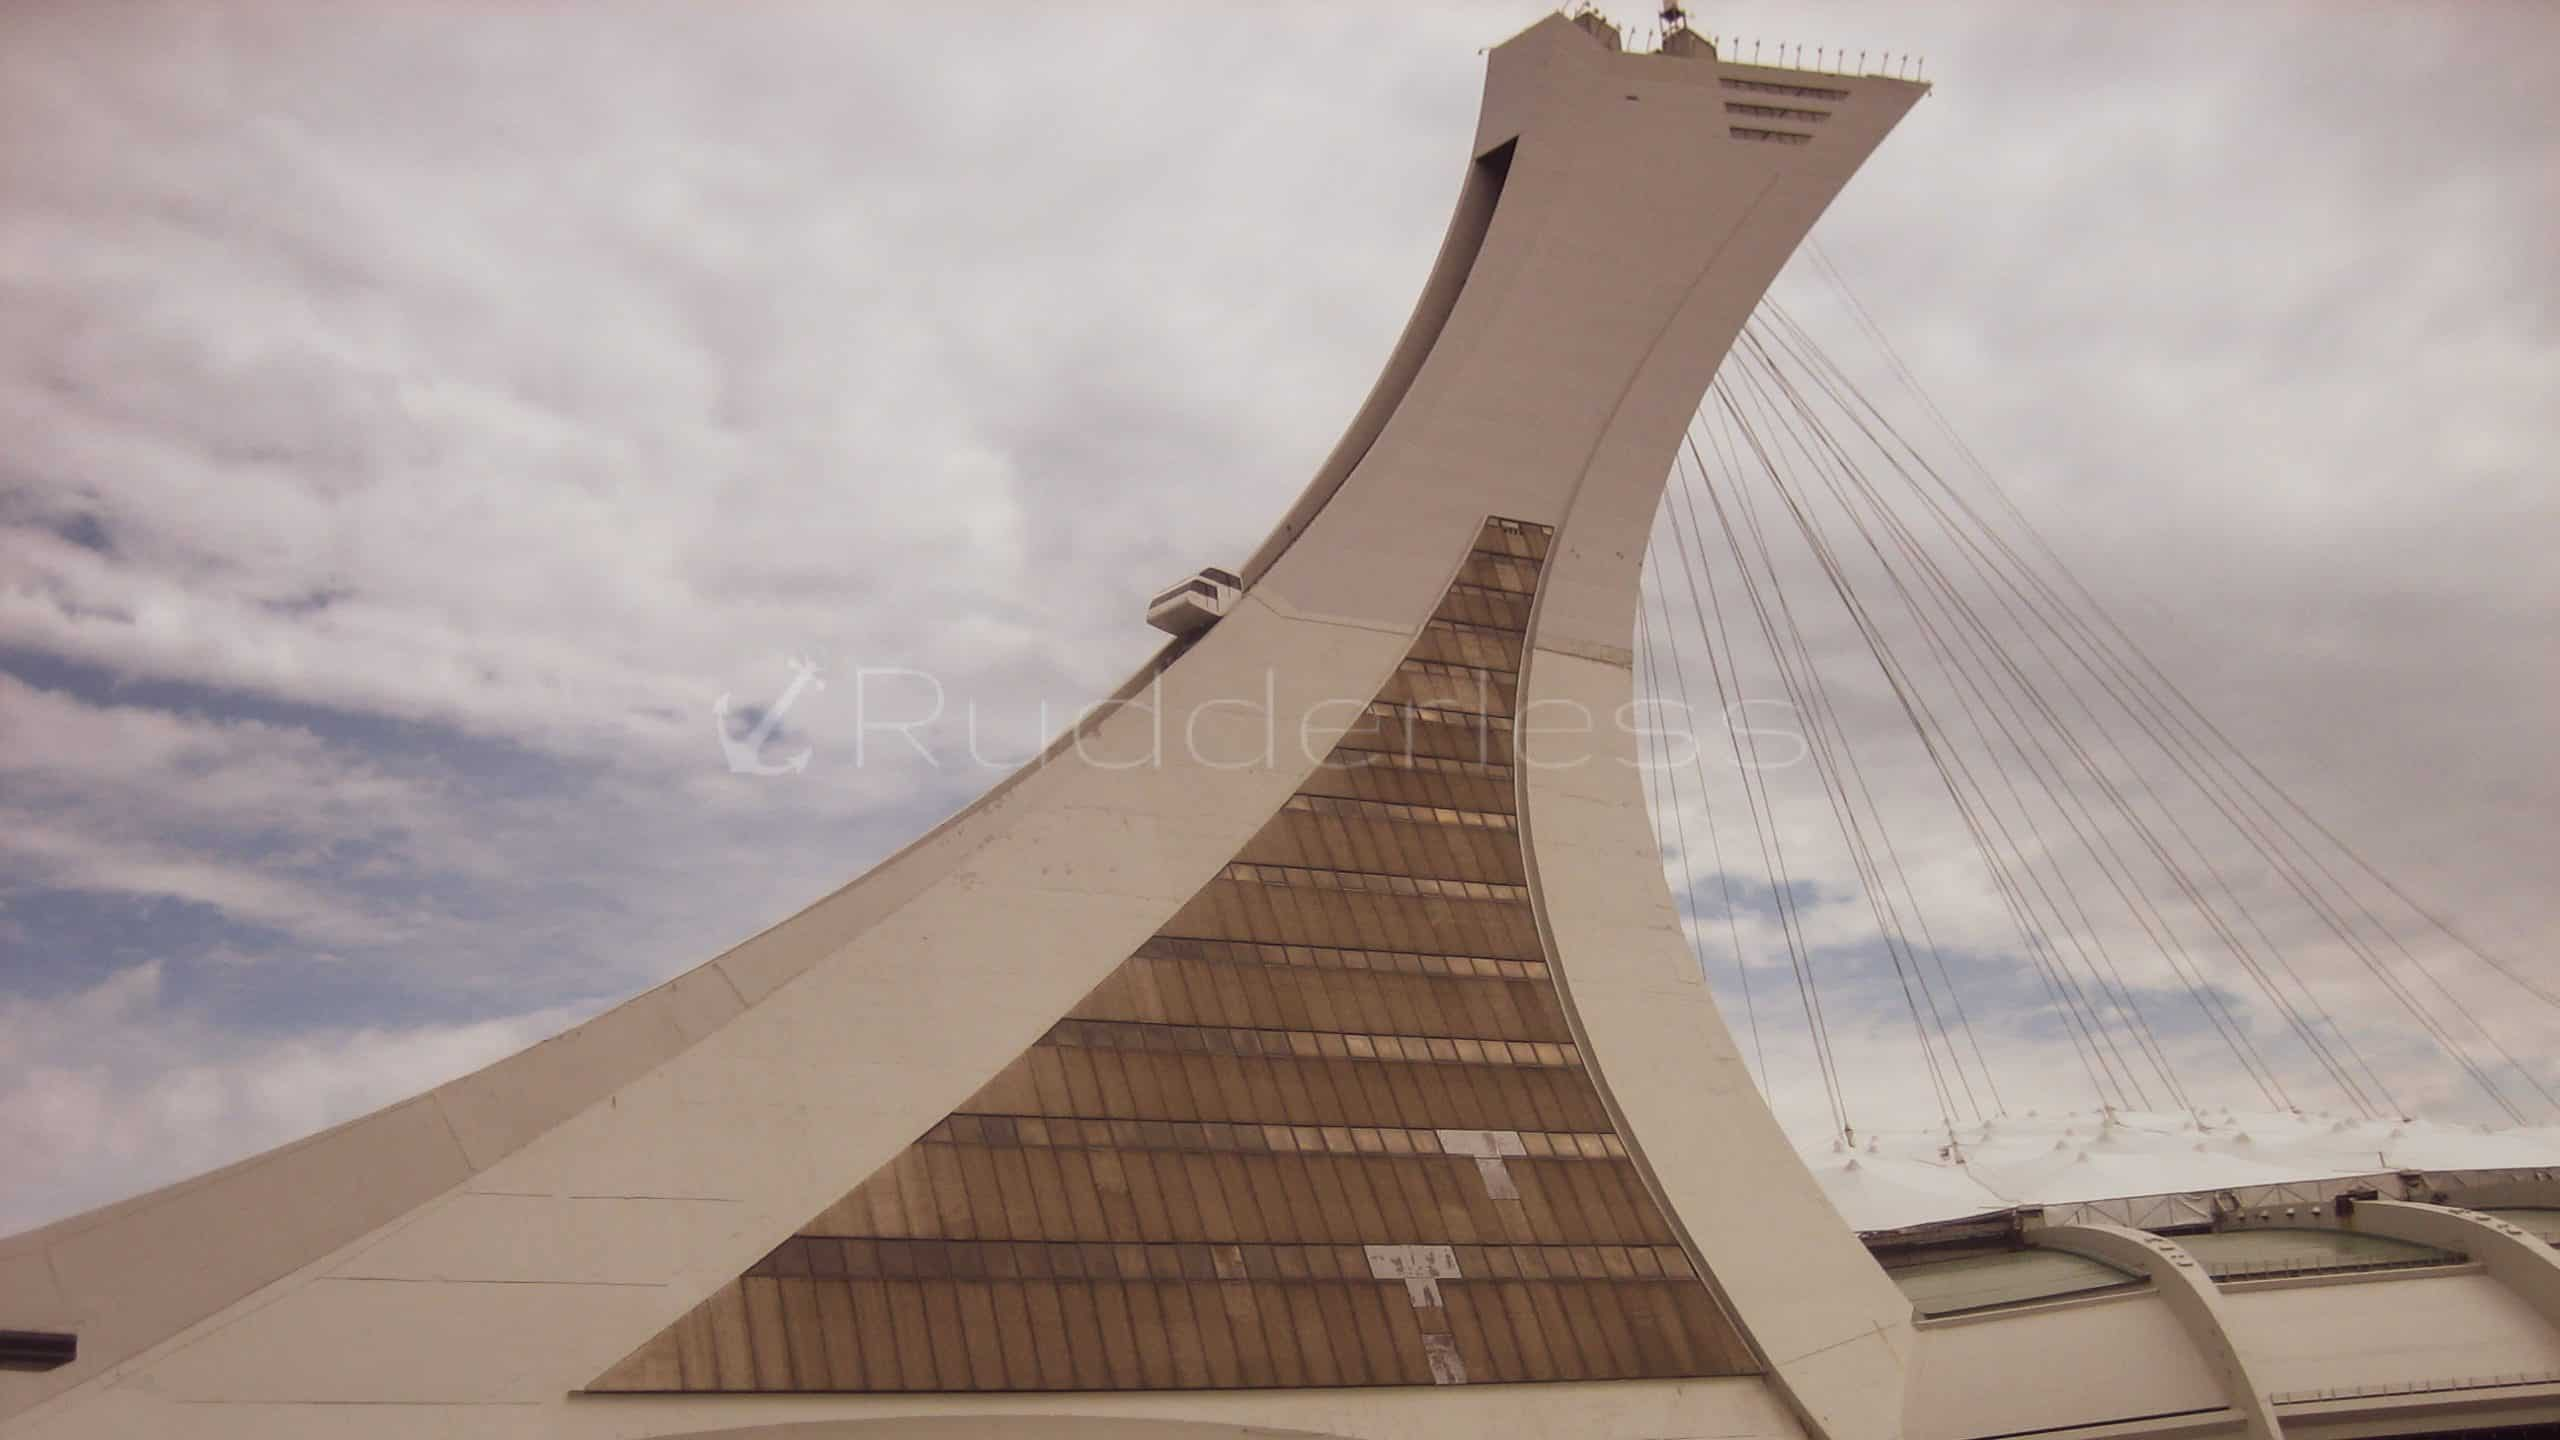 Olympic Stadium - what to see in montreal in 2 days